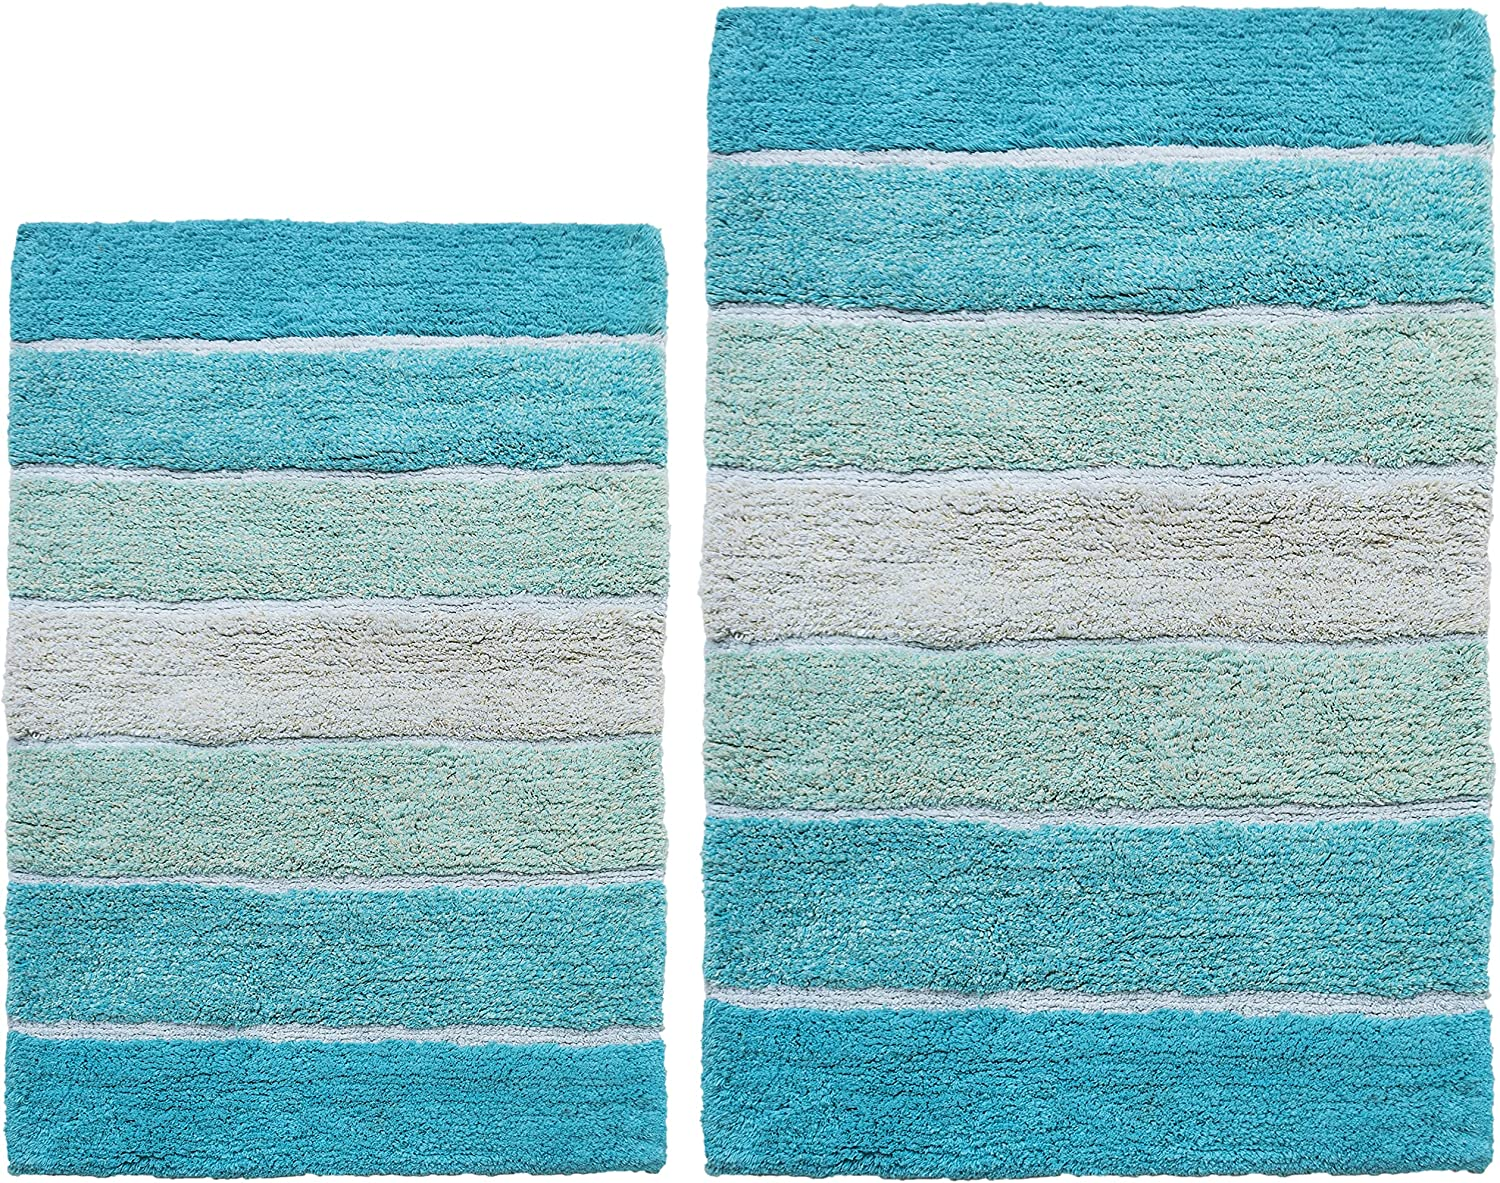 Chardin Home Cordural Stripes Factory outlet Bath Mat 21 Rugs of Set I 2 Latest item